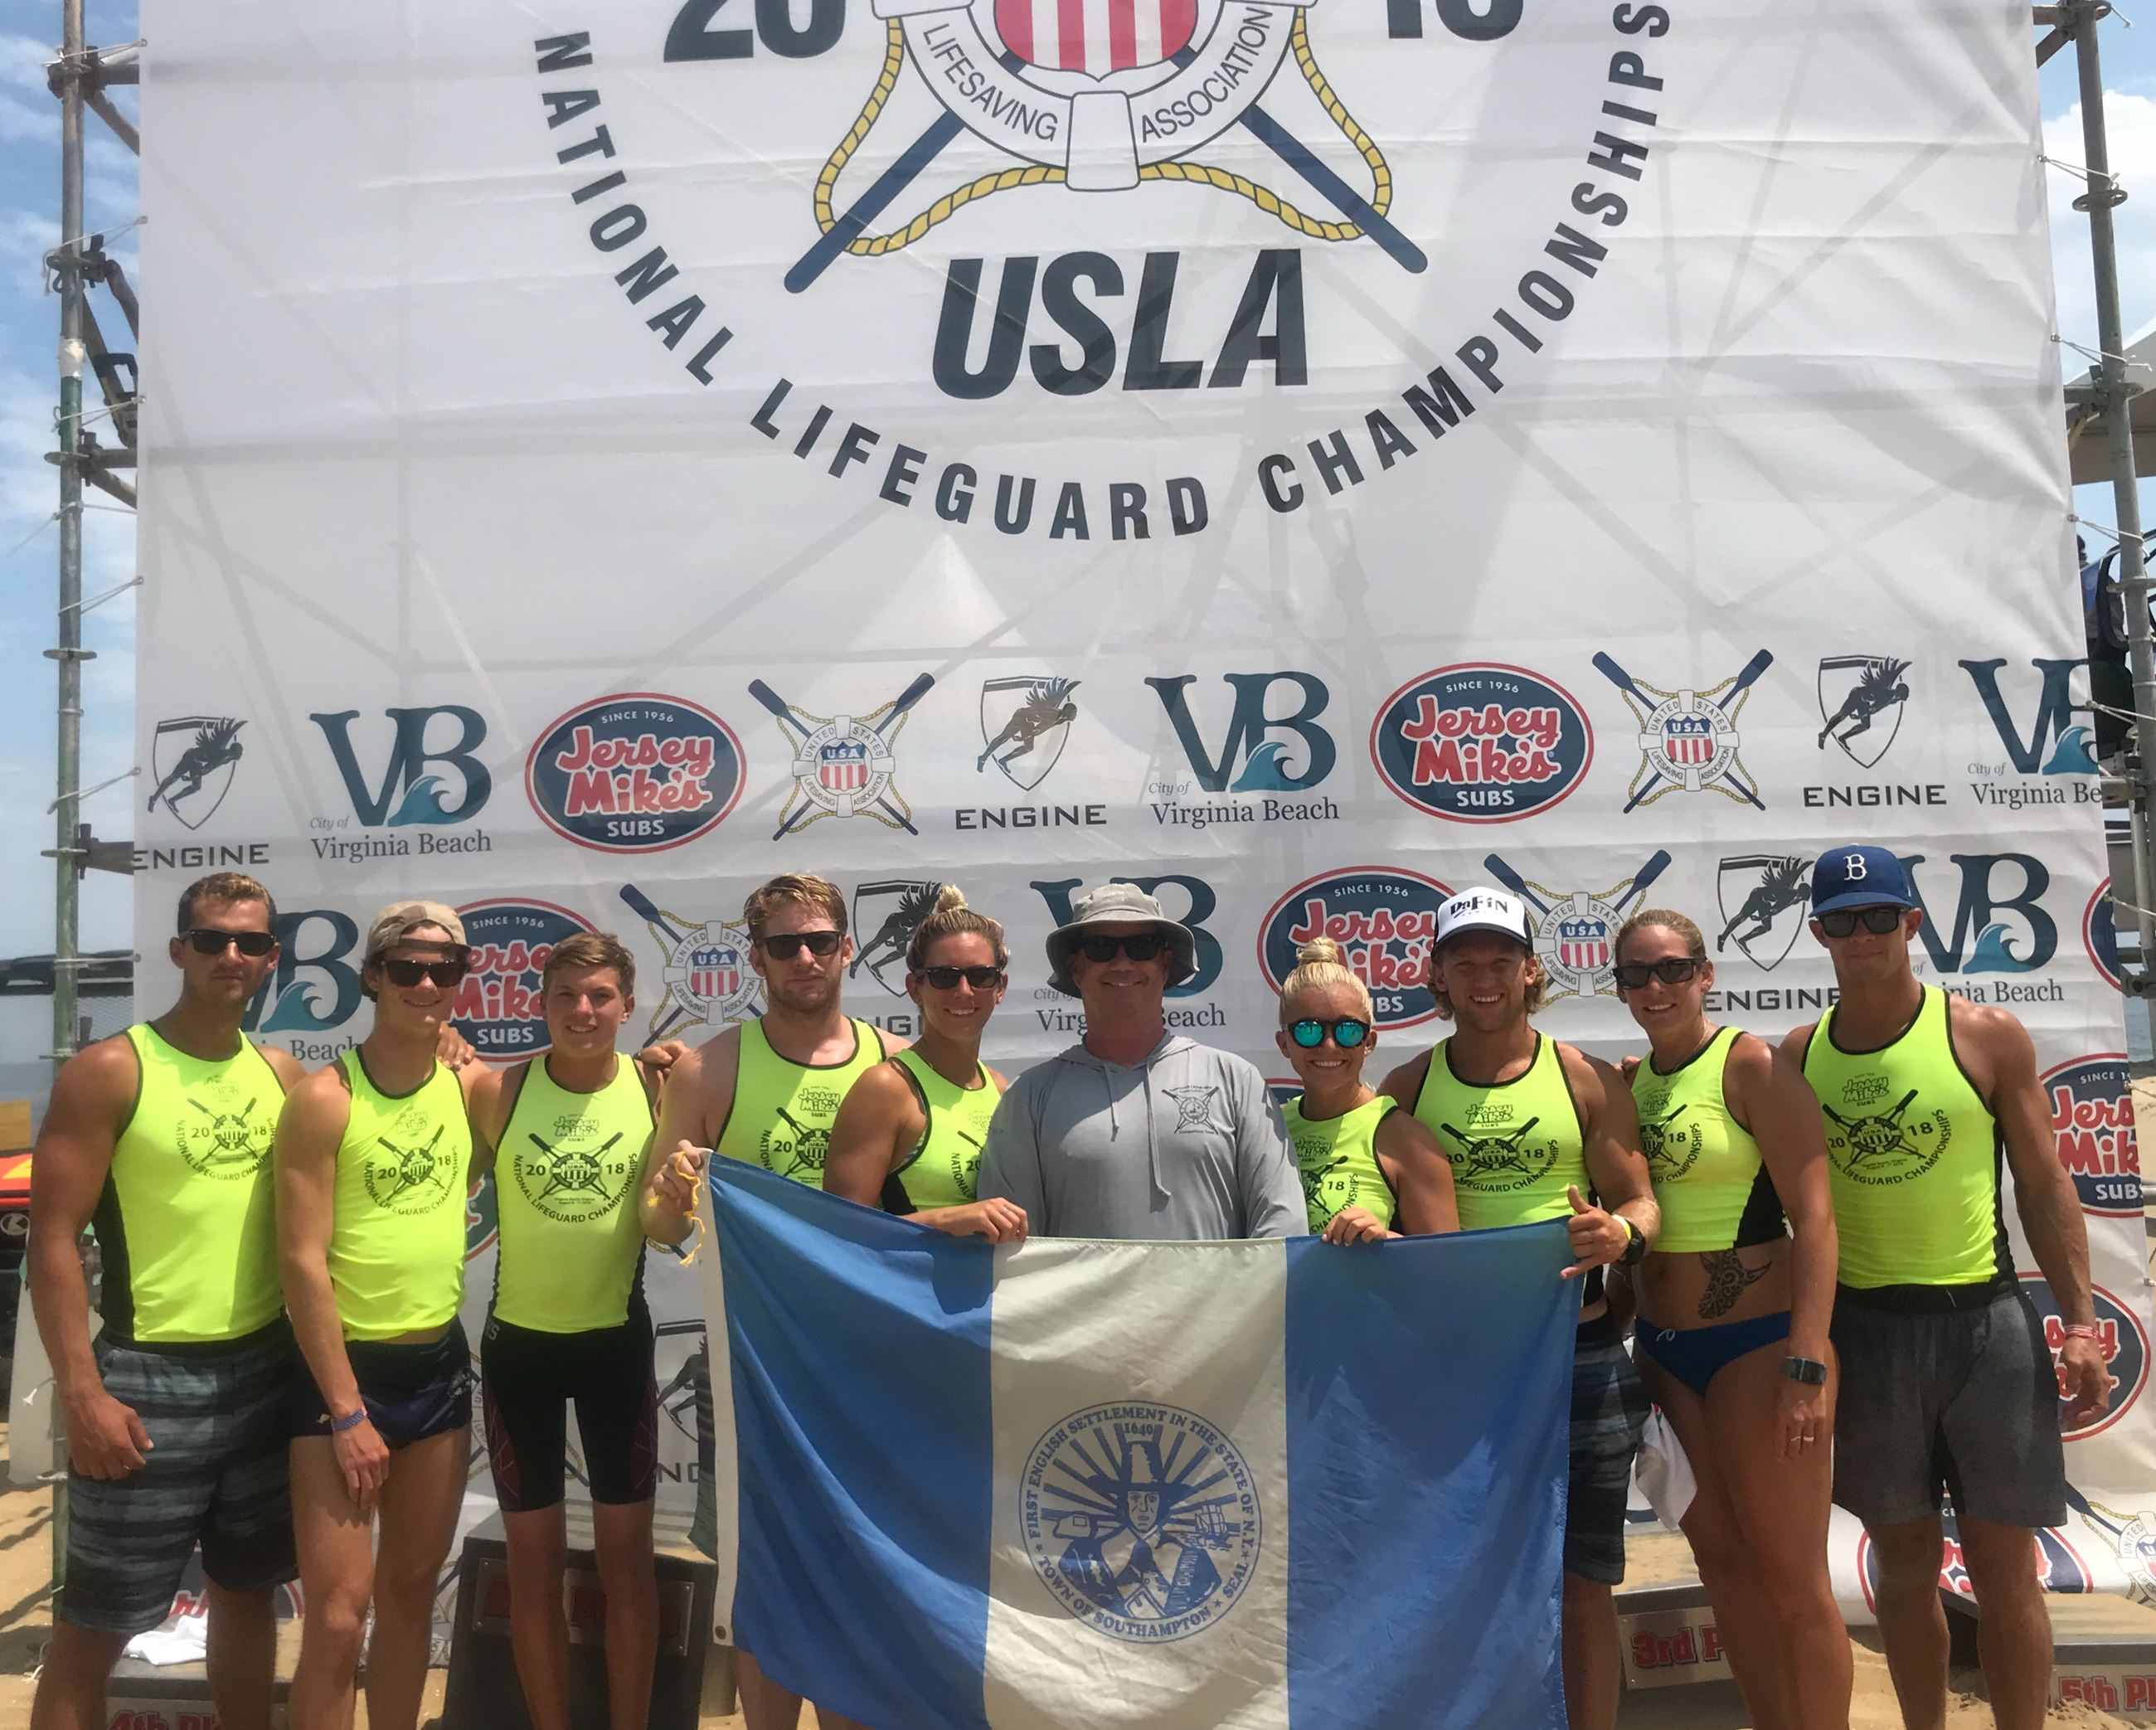 Lifeguard 2-TOS 218 USLA competition